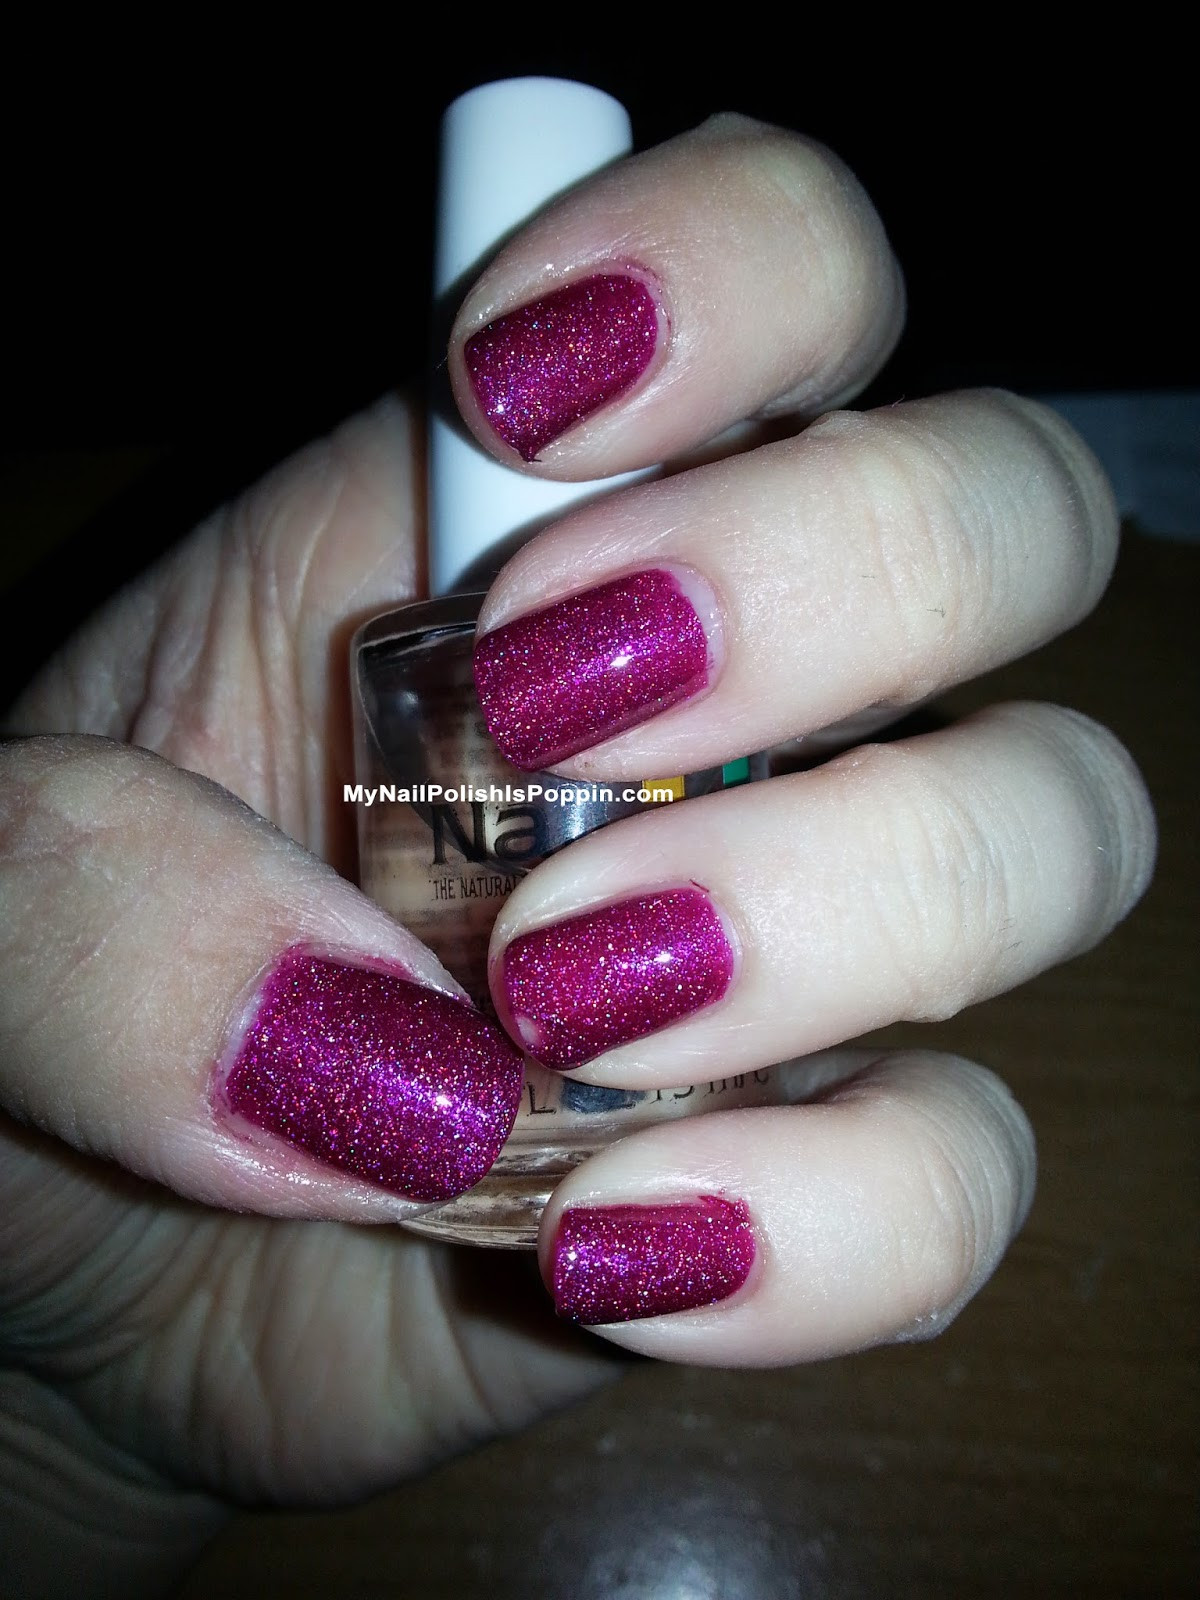 Orly Color Blast Magenta Gloss Glitter